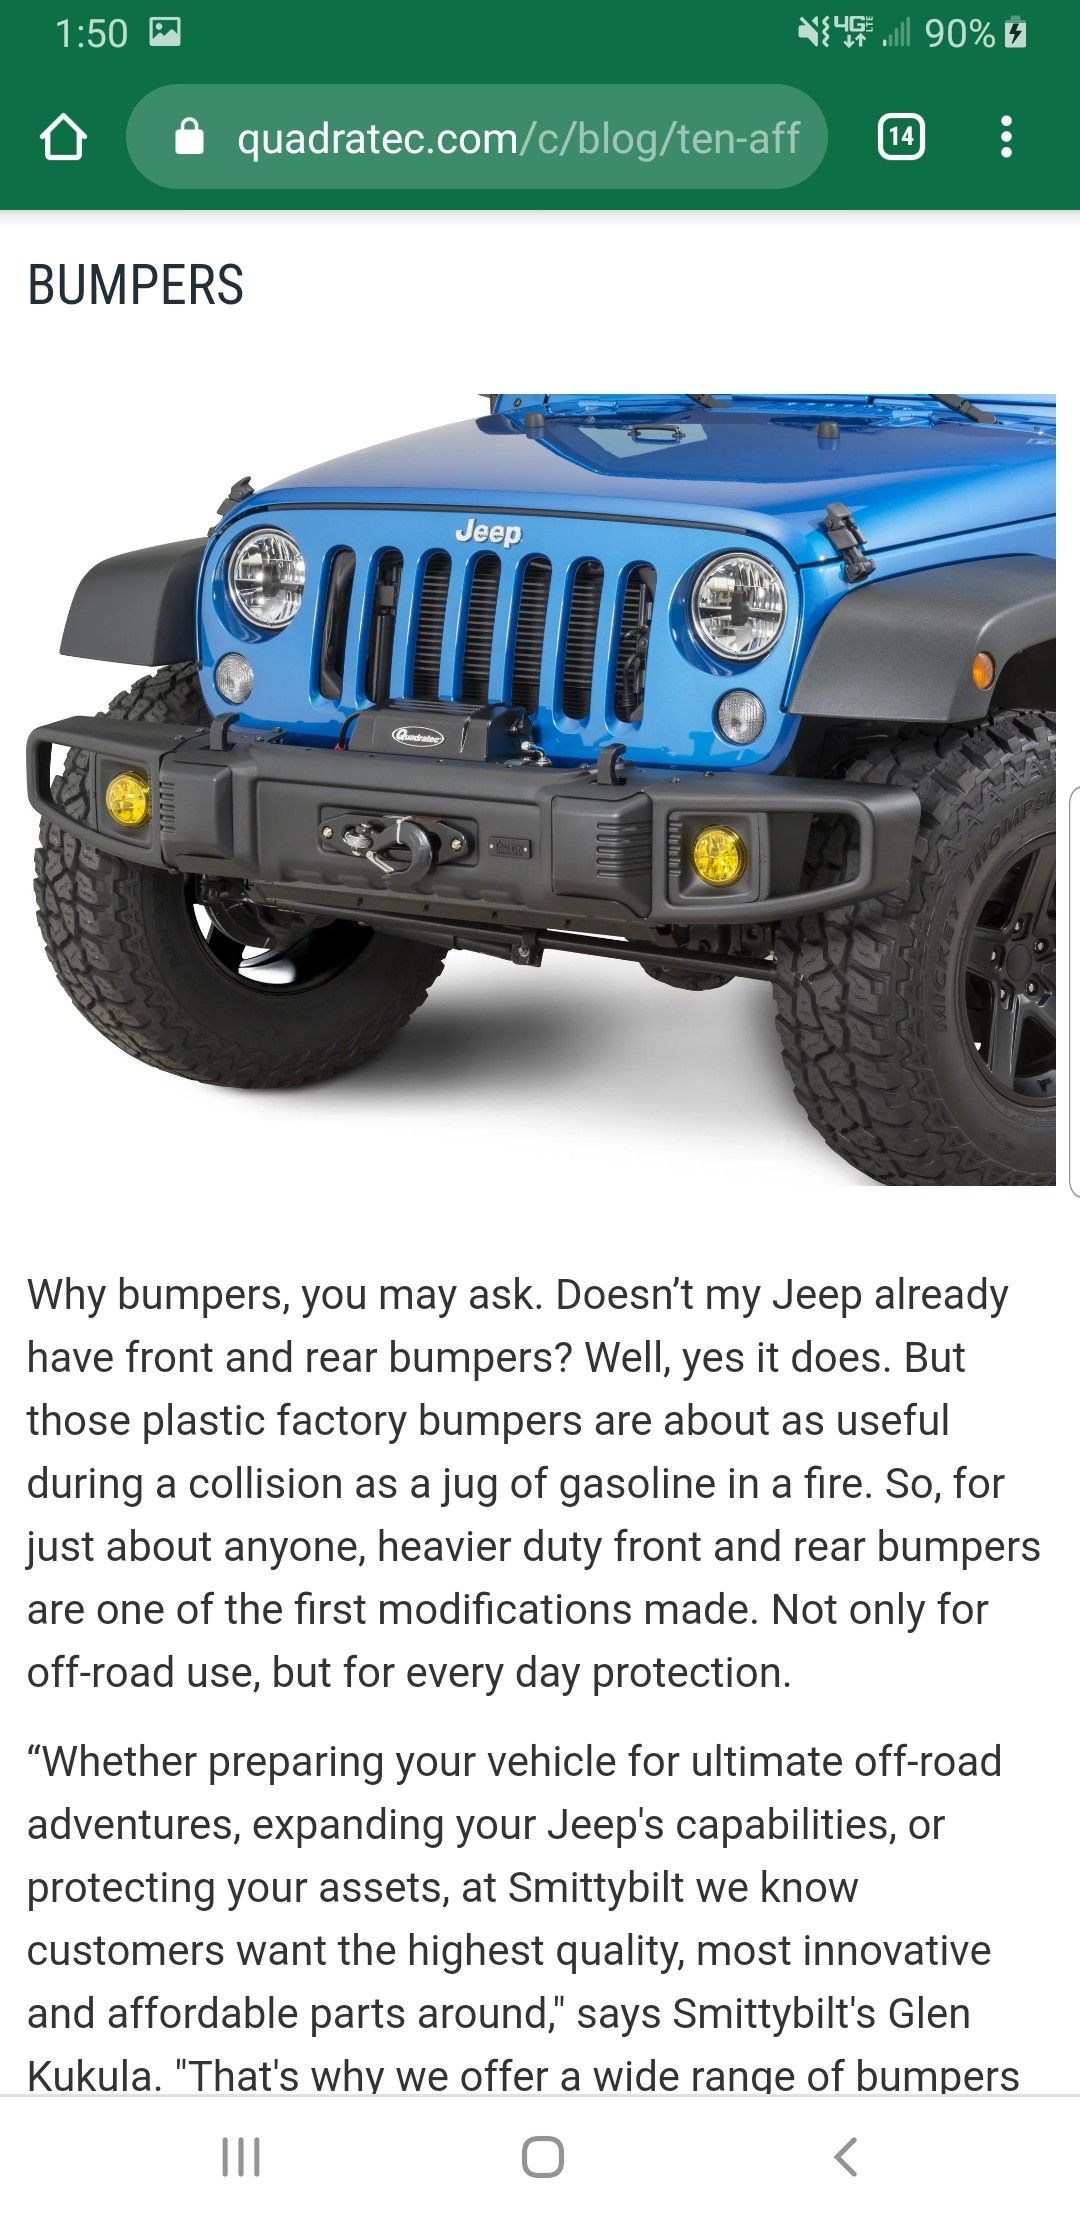 Pin By Lauren Donaghy On Jeep Life In 2020 Jeep Life Monster